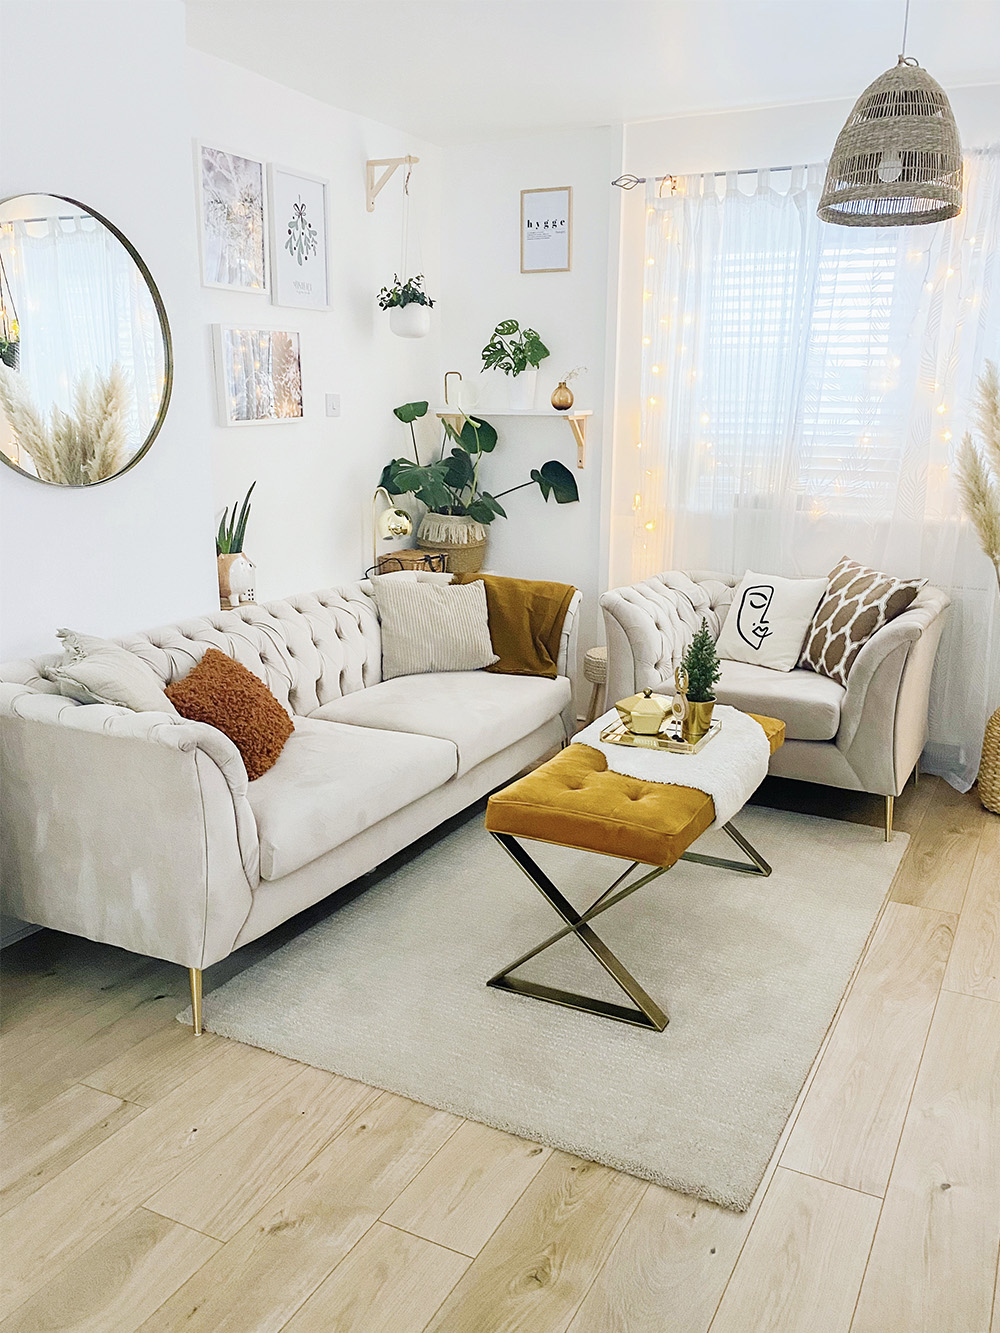 Beige Chesterfield Modern armchair and sofa from Marta